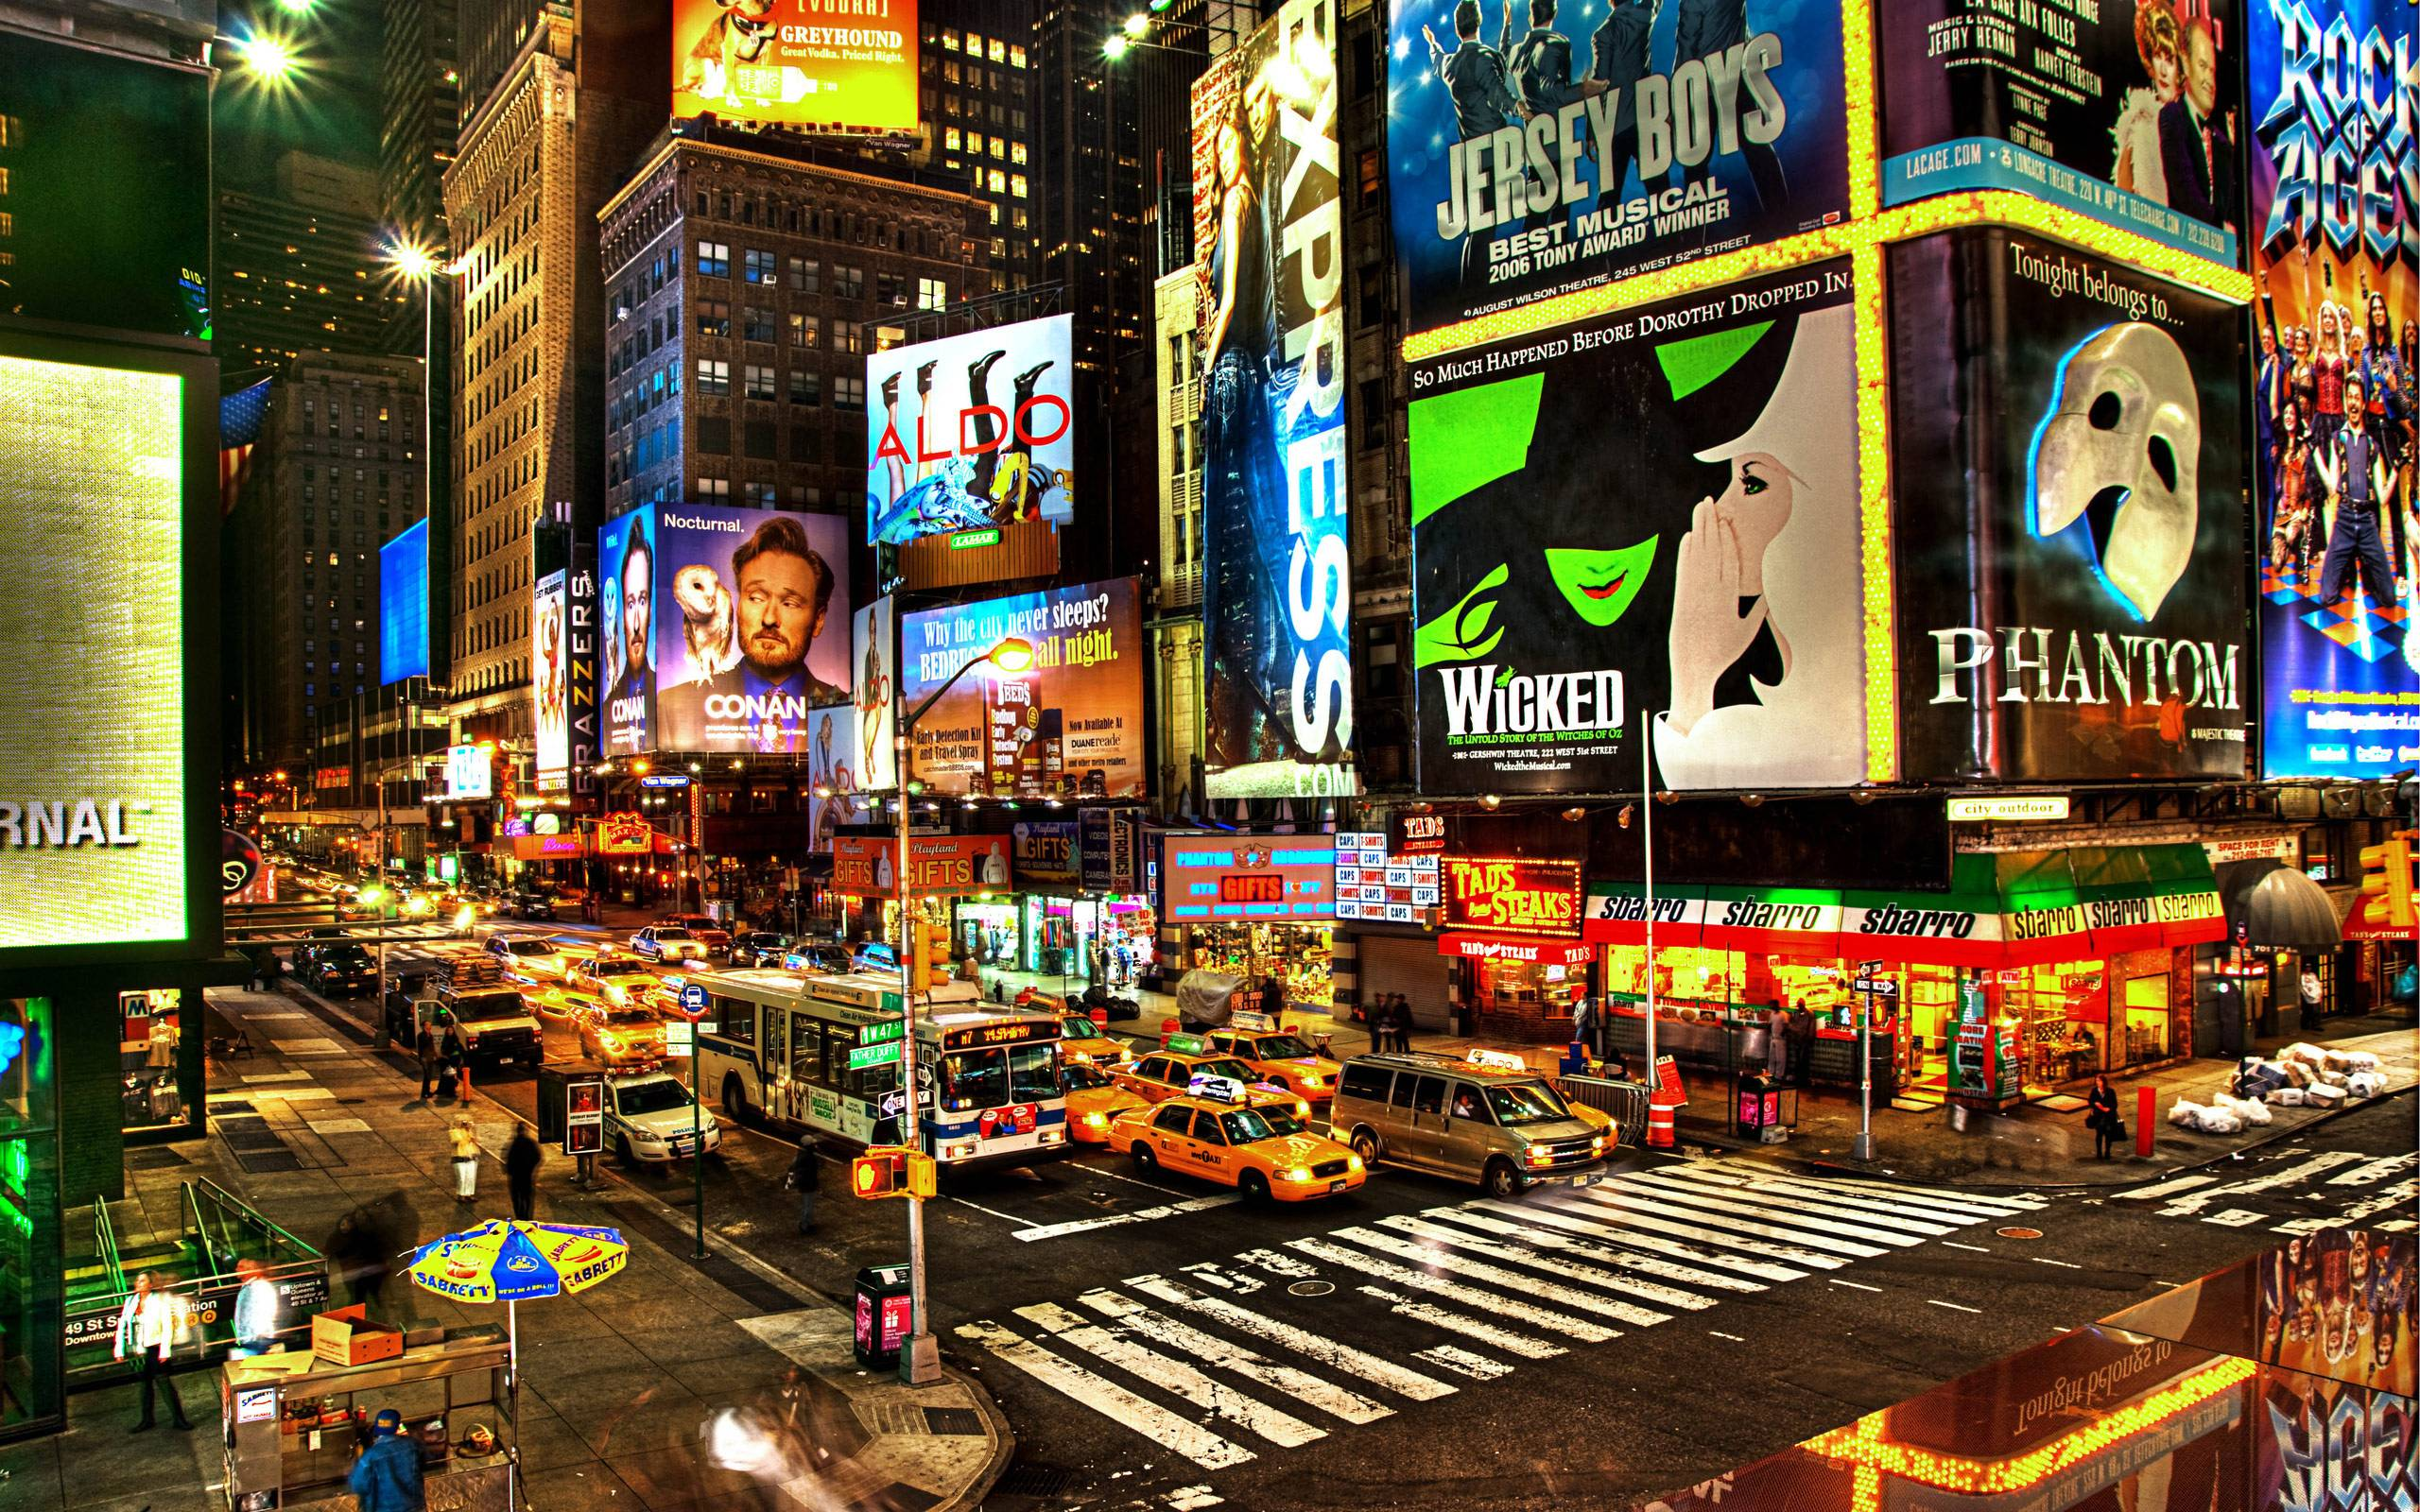 Nyc Times Square Hd Wallpapers Top Free Nyc Times Square Hd Backgrounds Wallpaperaccess